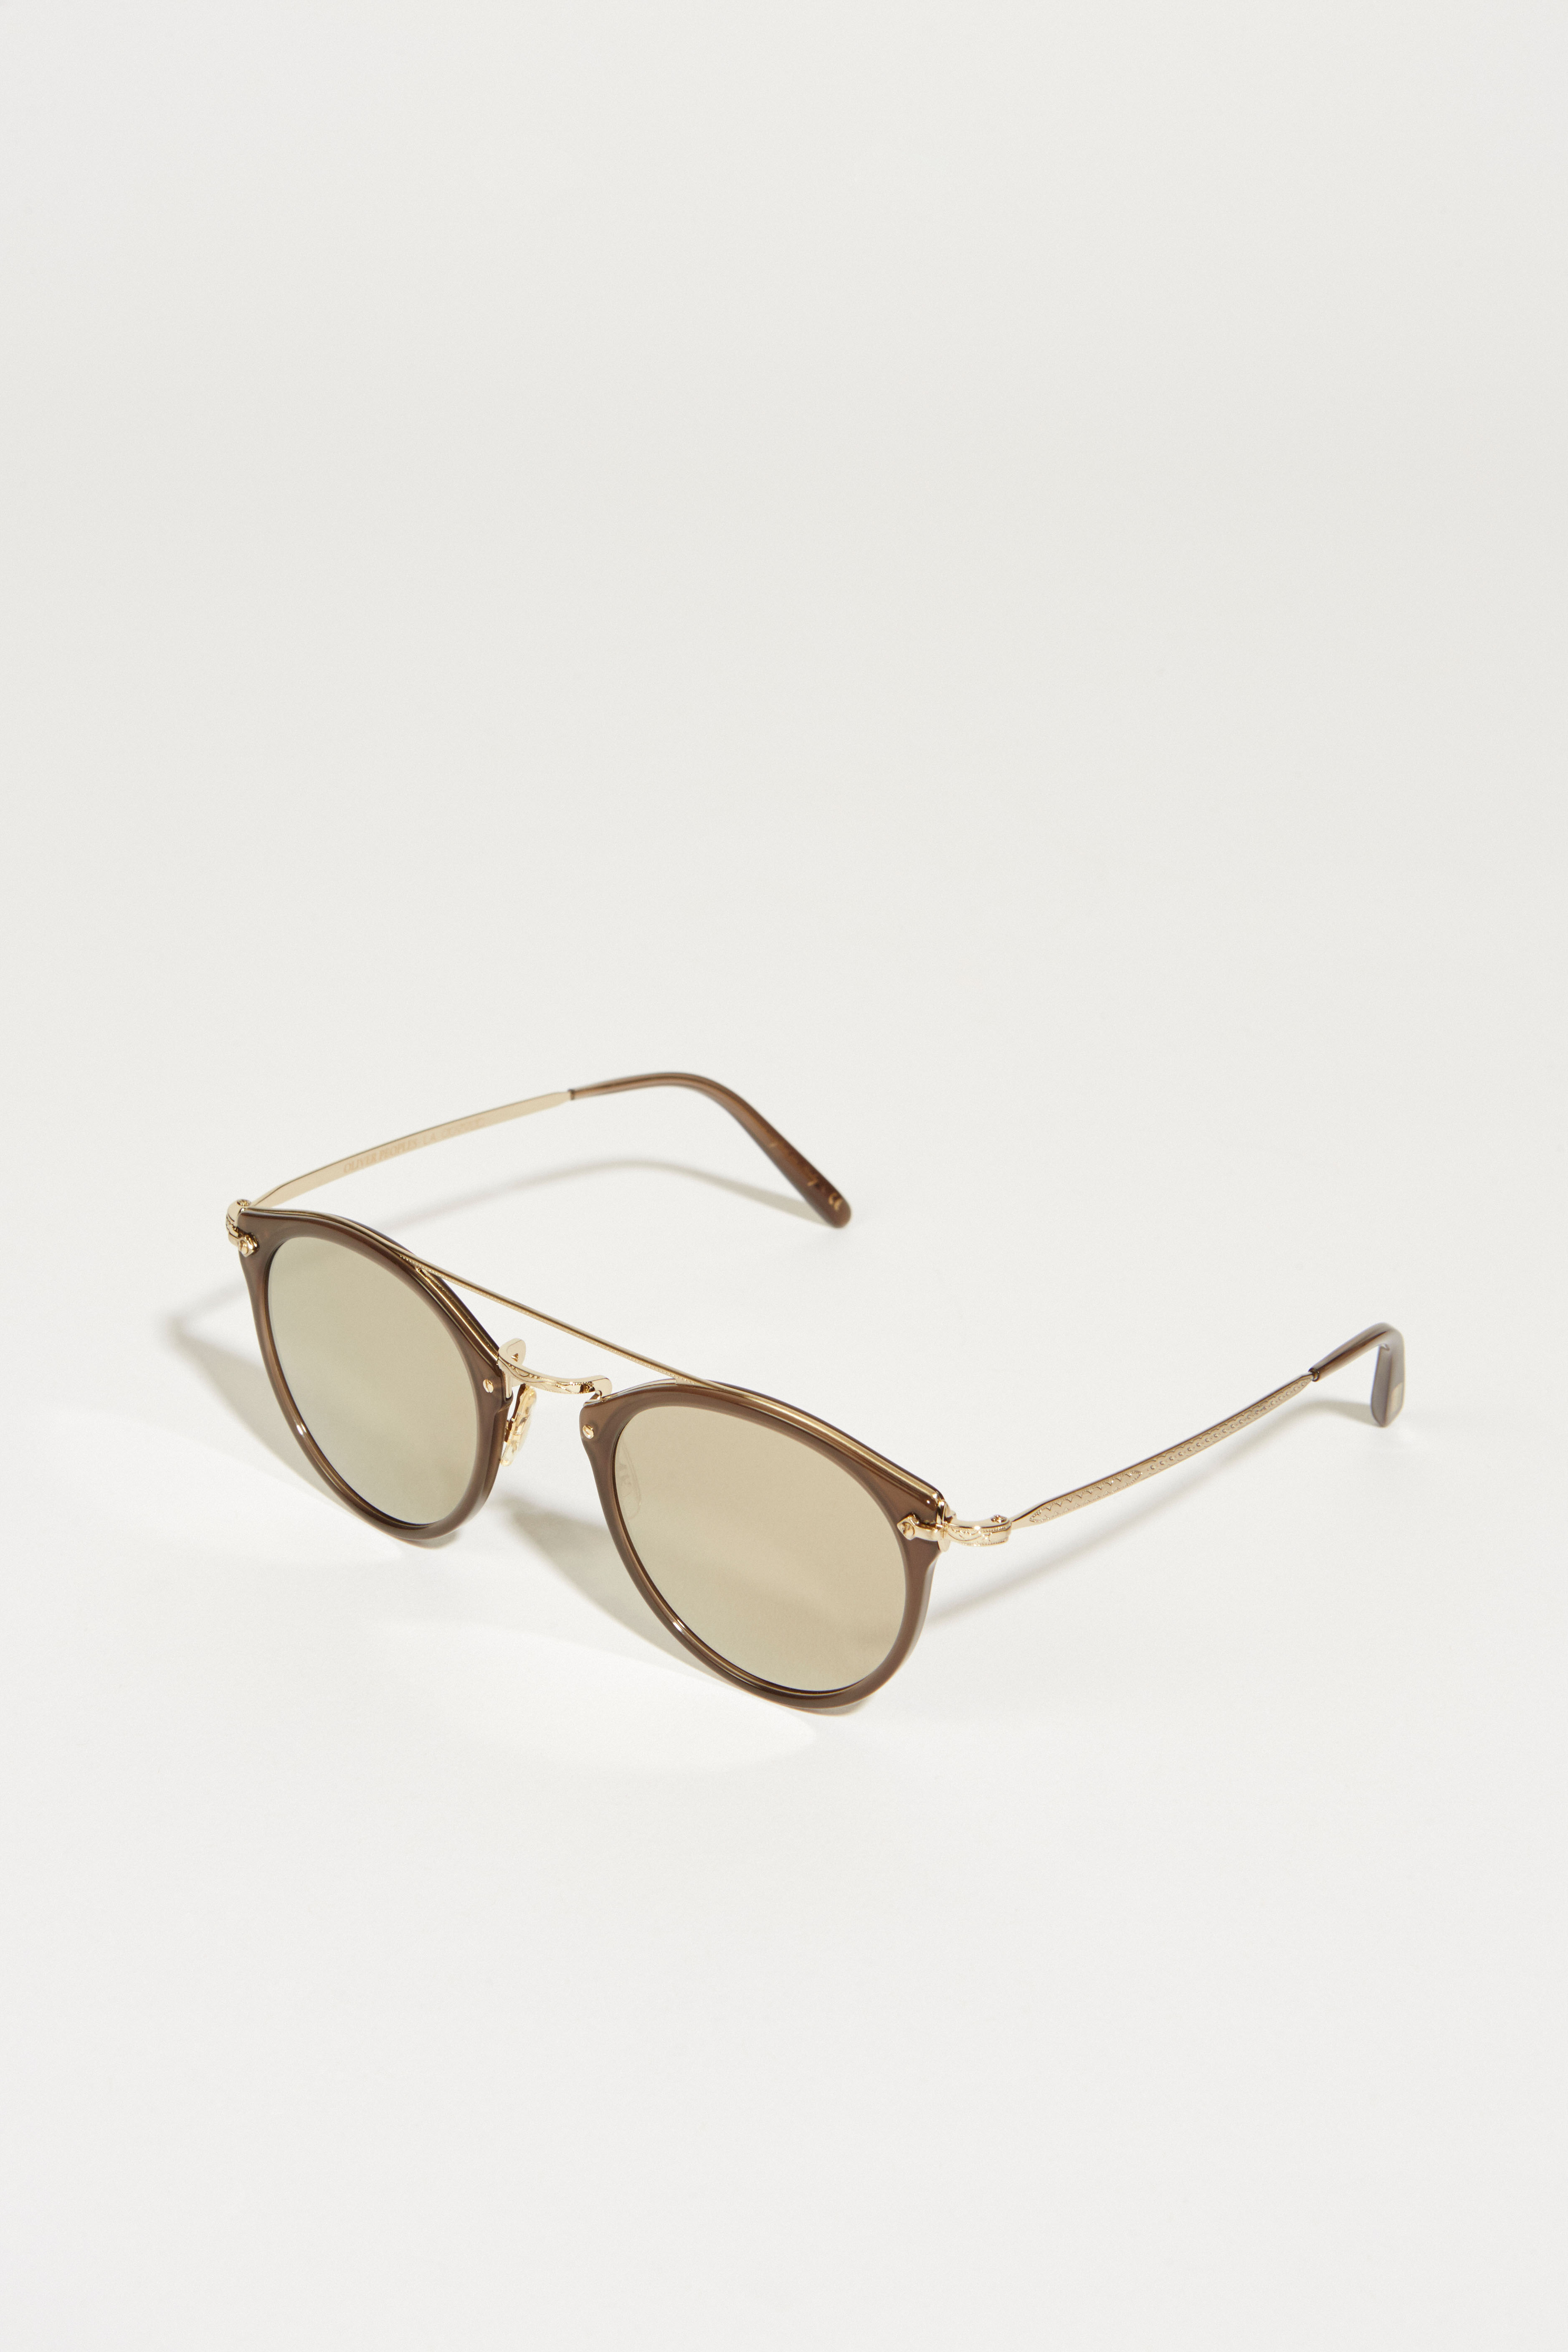 Sunglasses Remick Gold Brown